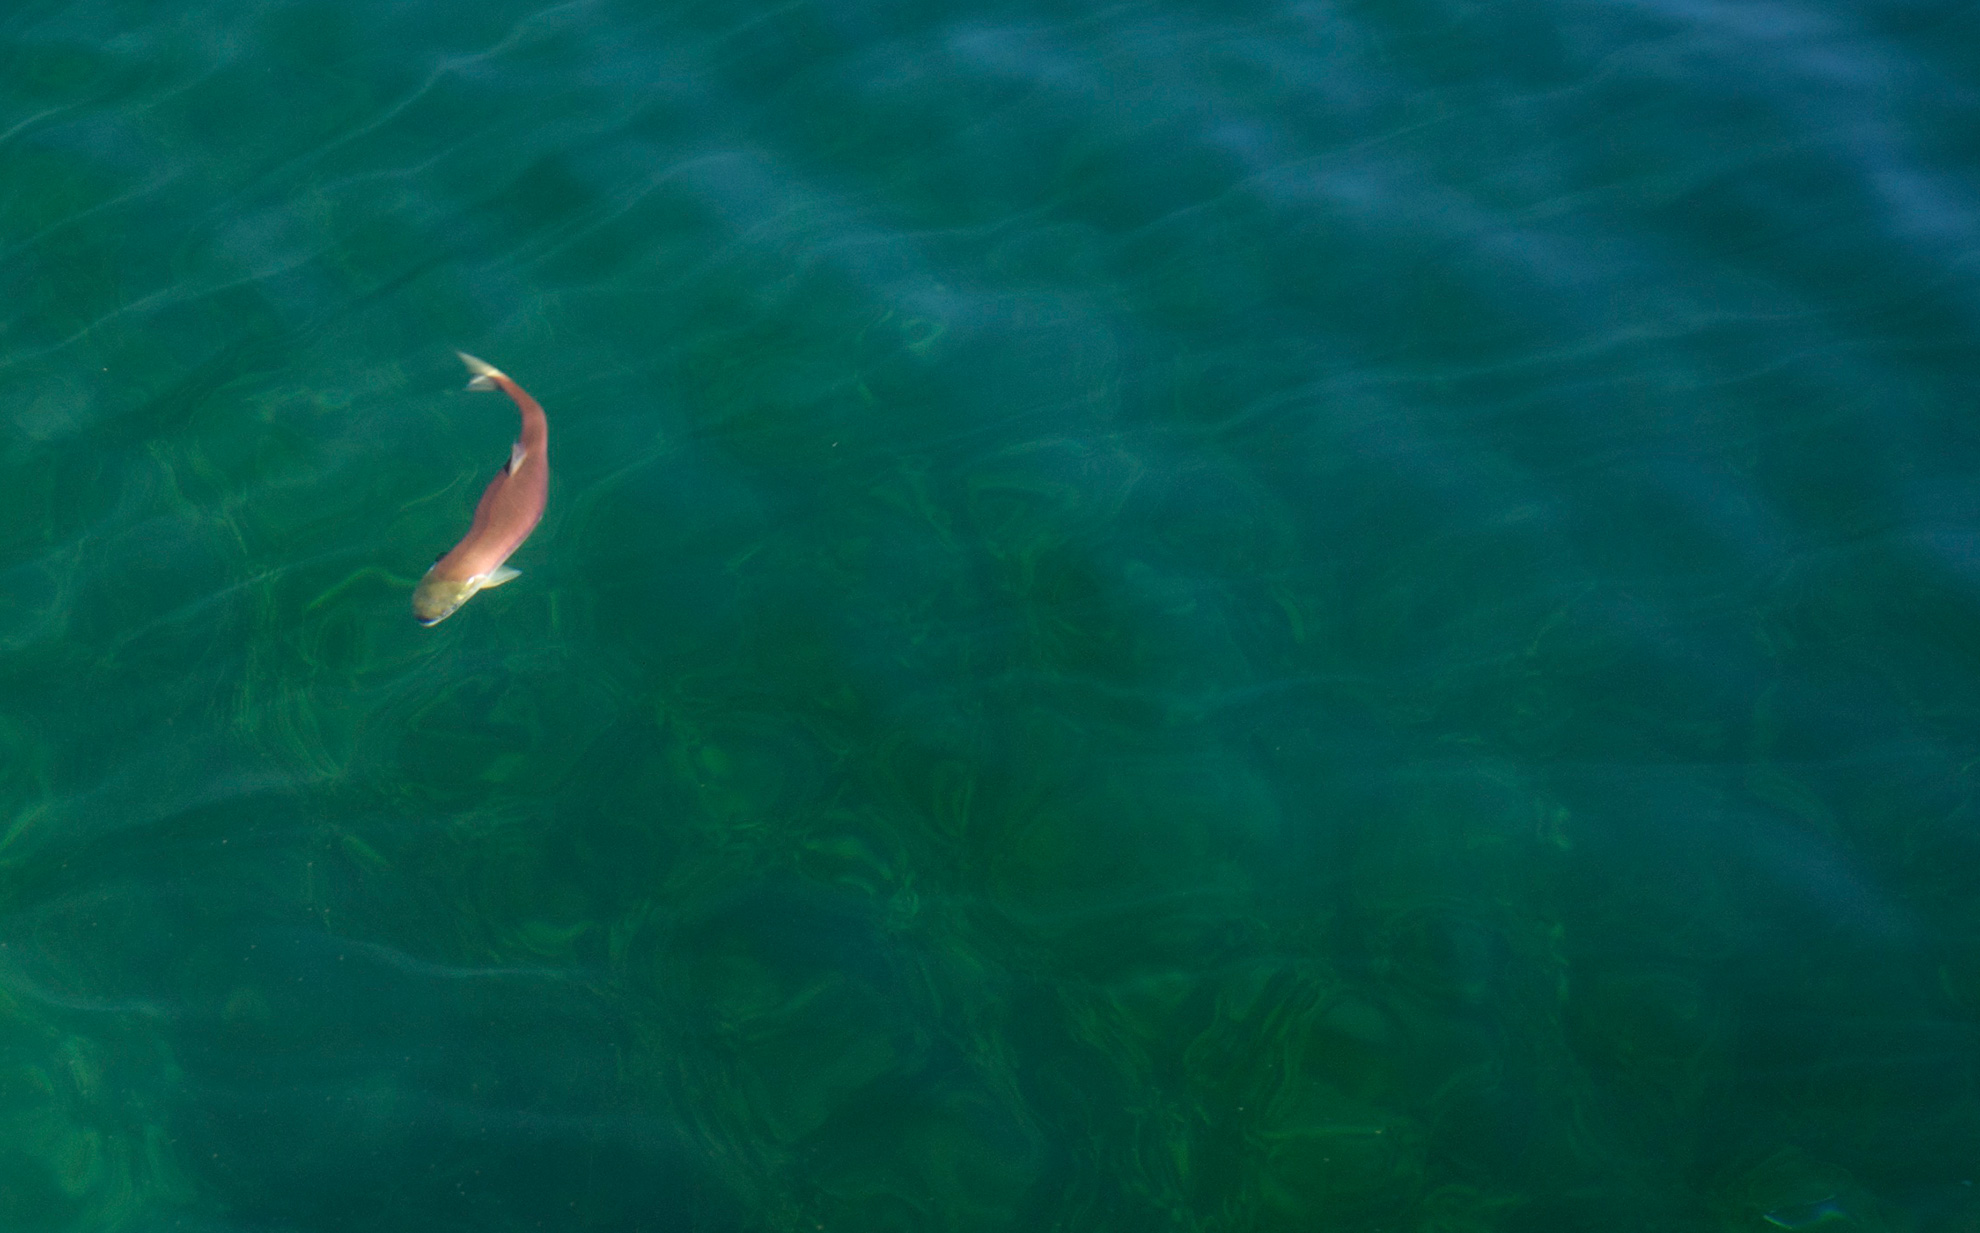 A sockeye salmon (Oncorhynchus nerka) in Redfish Lake, Sawtooth National Recreation Area, Idaho. (Neil Ever Osborne / Save Our Wild Salmon / iLCP)